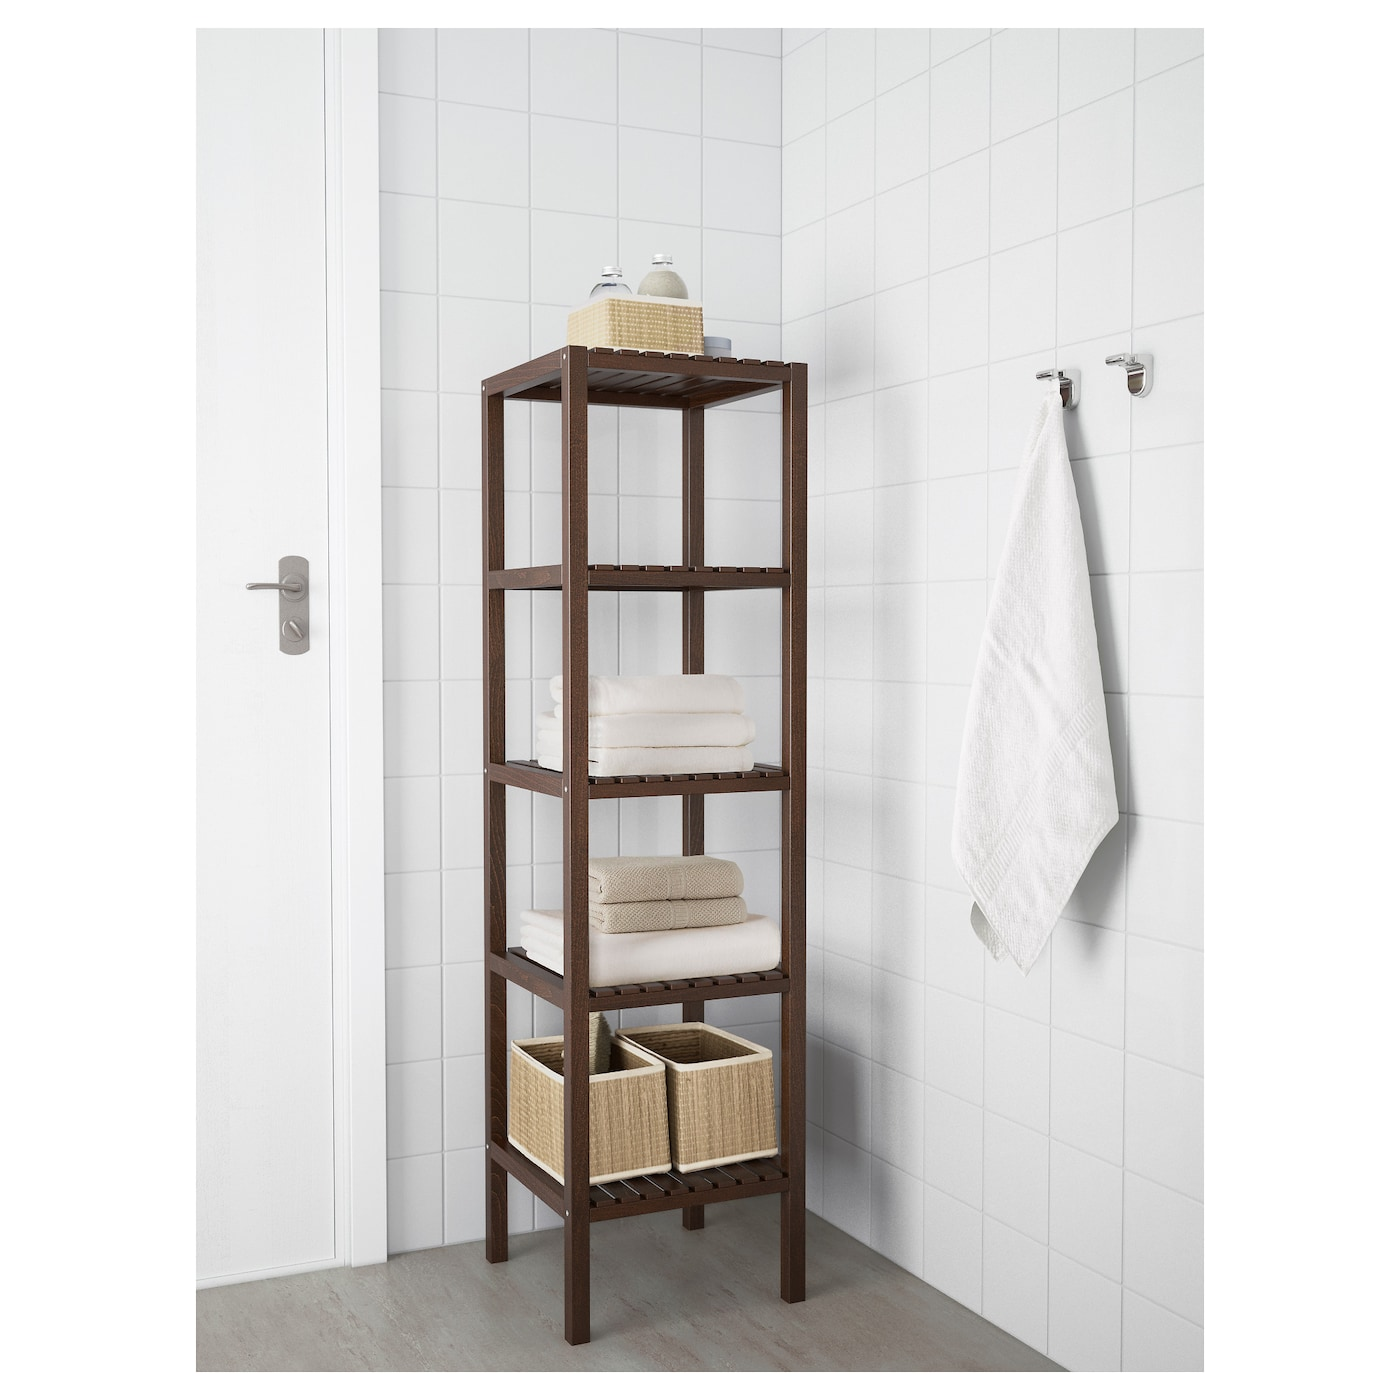 Ikea Toilet Shelf Molger Shelving Unit Dark Brown 37x140 Cm Ikea